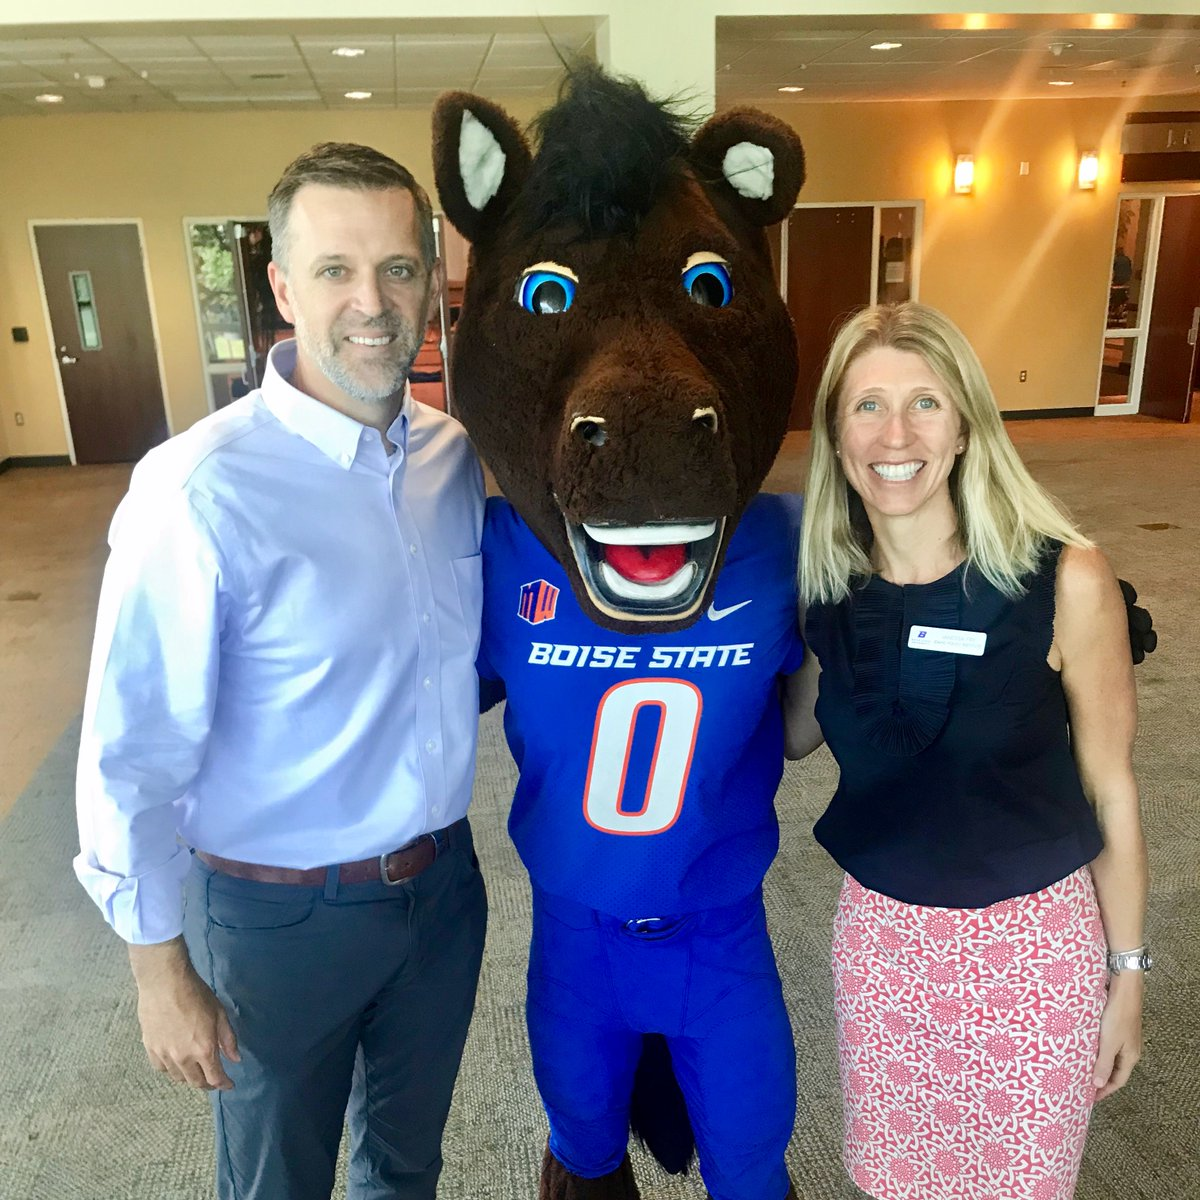 Happy #NationalBossDay to the two best bosses AND the best mascot around! #BoiseState <br>http://pic.twitter.com/MWXTypTSaN